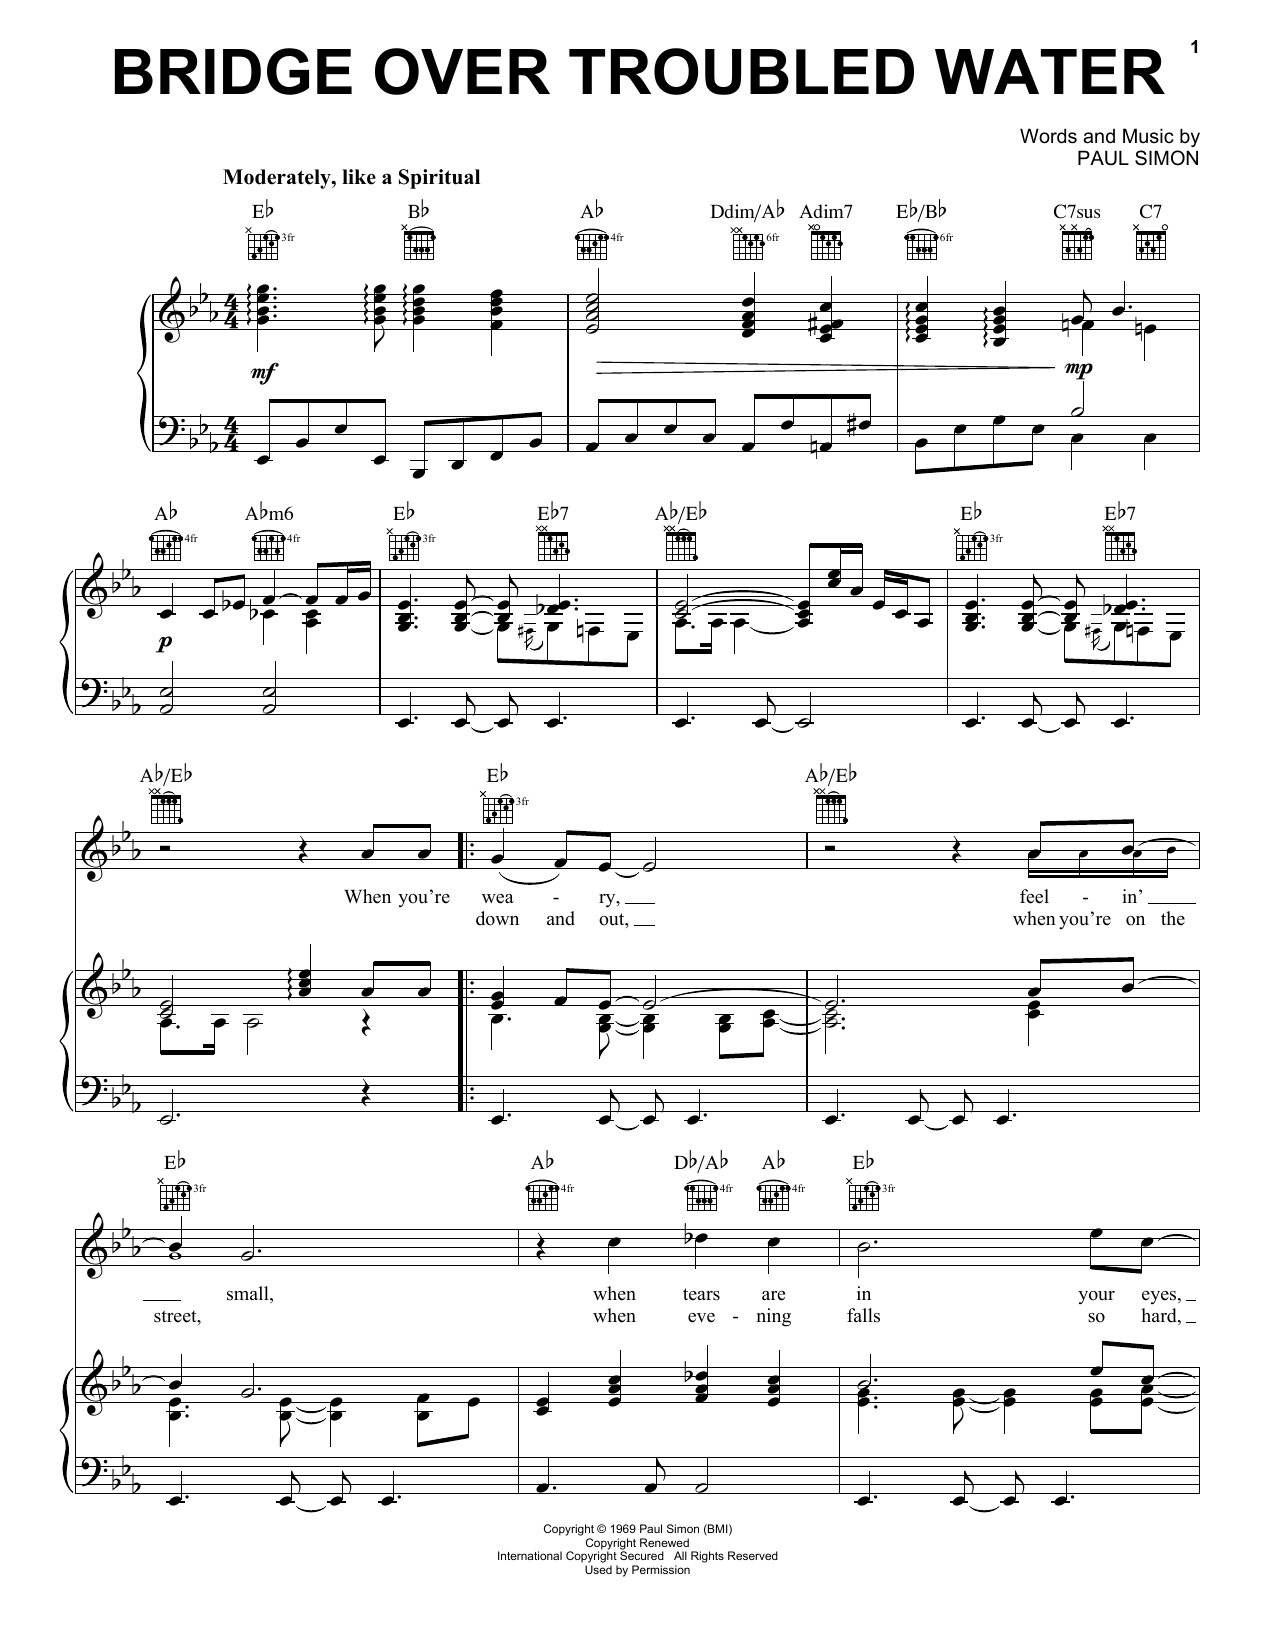 Simon & Garfunkel Bridge Over Troubled Water sheet music notes and chords